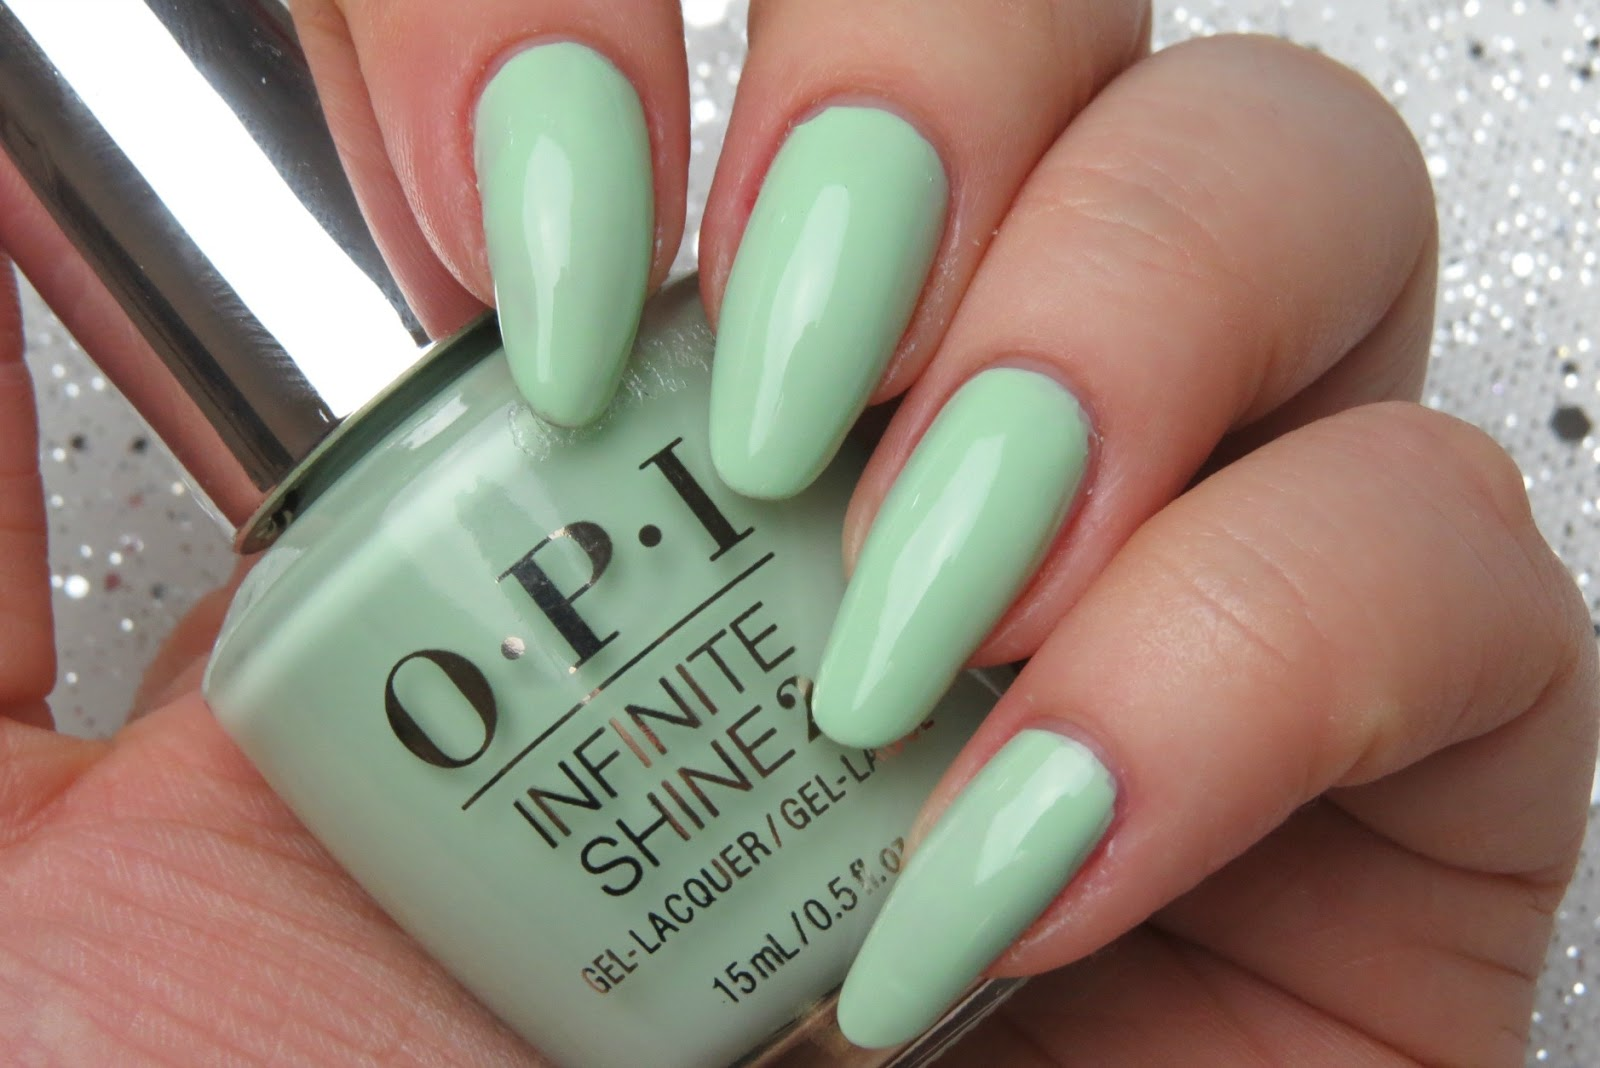 Lujo Opi Color Natural Esmalte De Uñas Fotos - Ideas de Pintar de ...